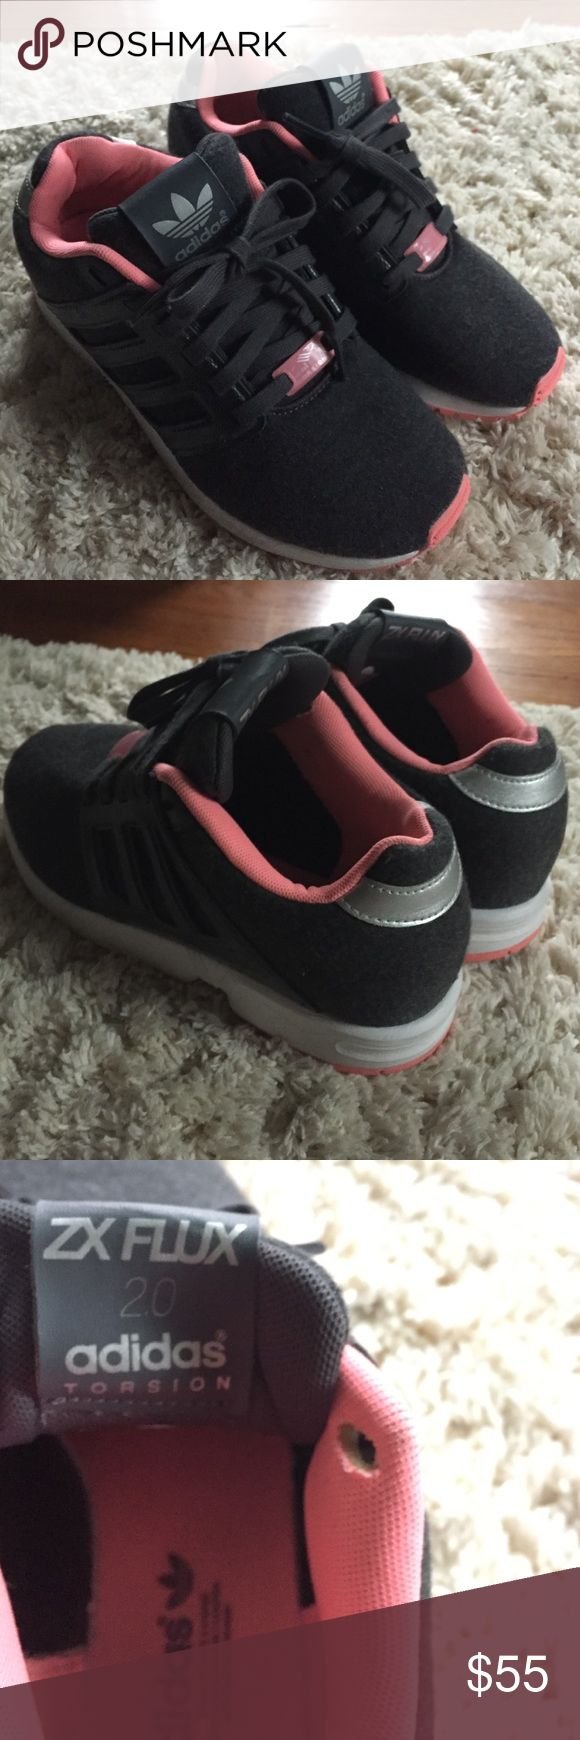 Adidas Torsion ZX Flux 2.0 Two different fabrics with hot pink, gray, and white. I wish these fit me. They look to be fairly worn so they're in really good condition! Adidas Shoes Athletic Shoes